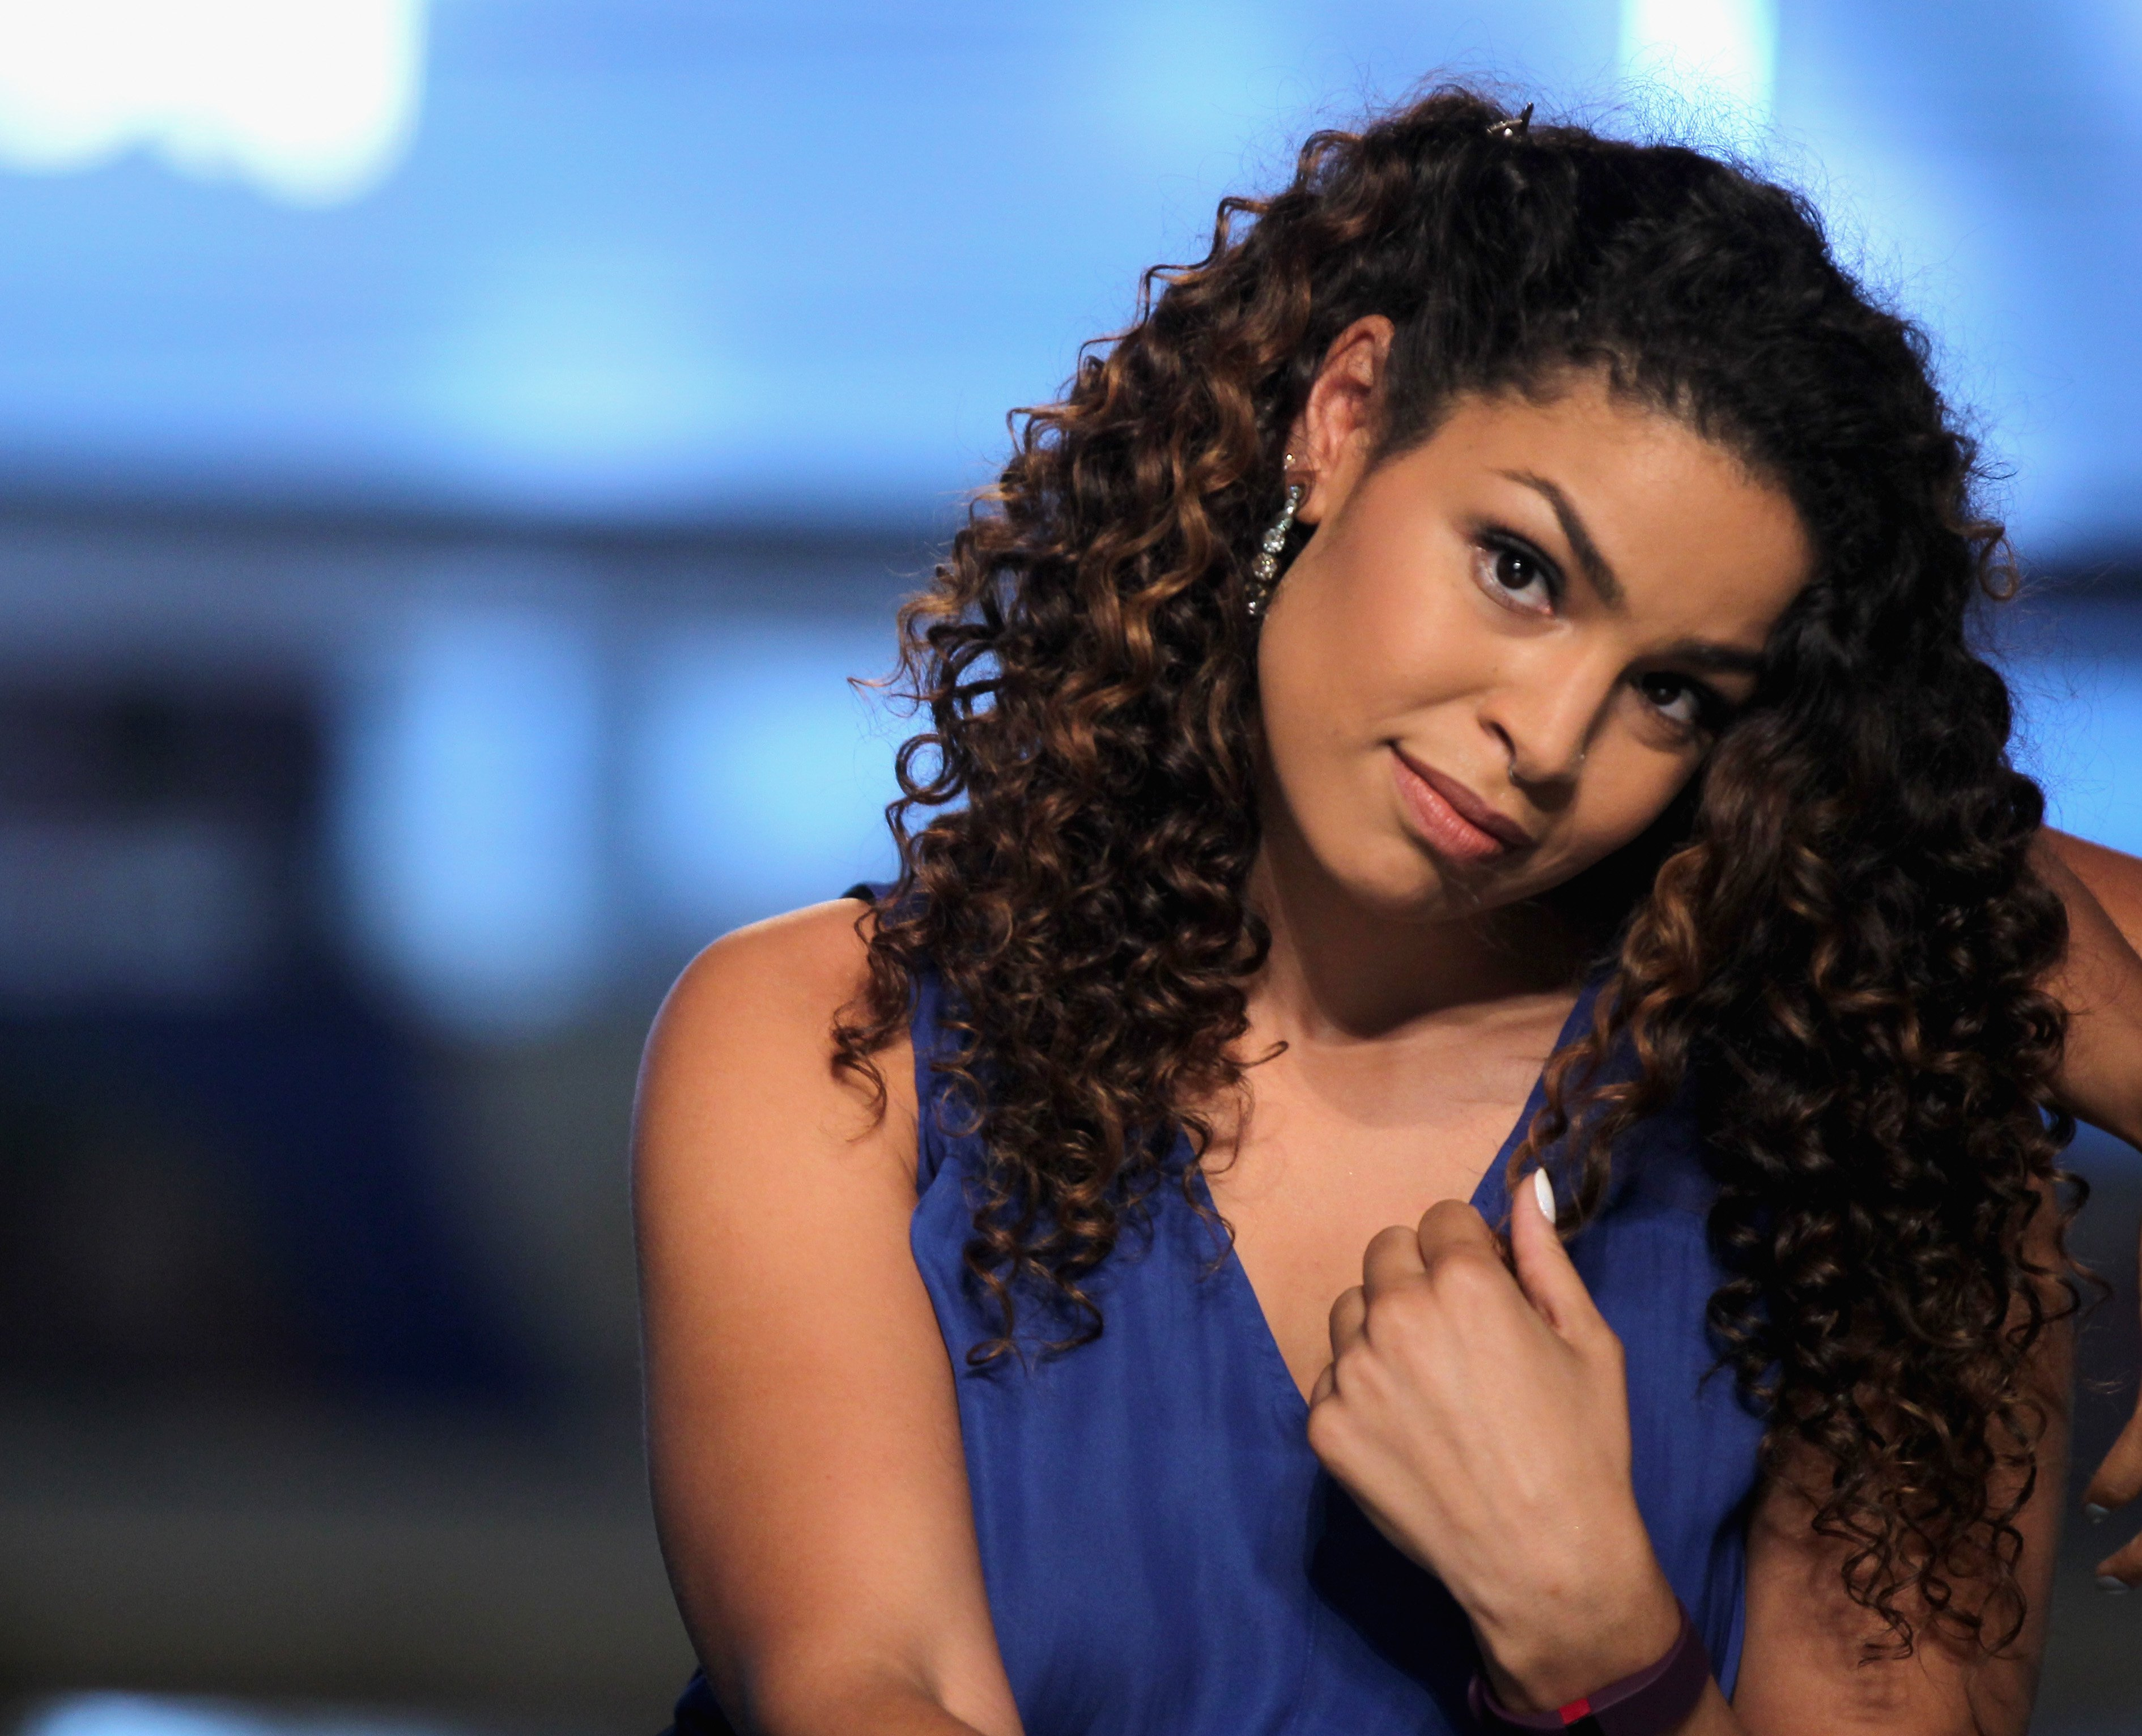 Jordin Sparks at Fashion Show Las Vegas on August 15, 2015 in Las Vegas, Nevada.  Source: Getty Images